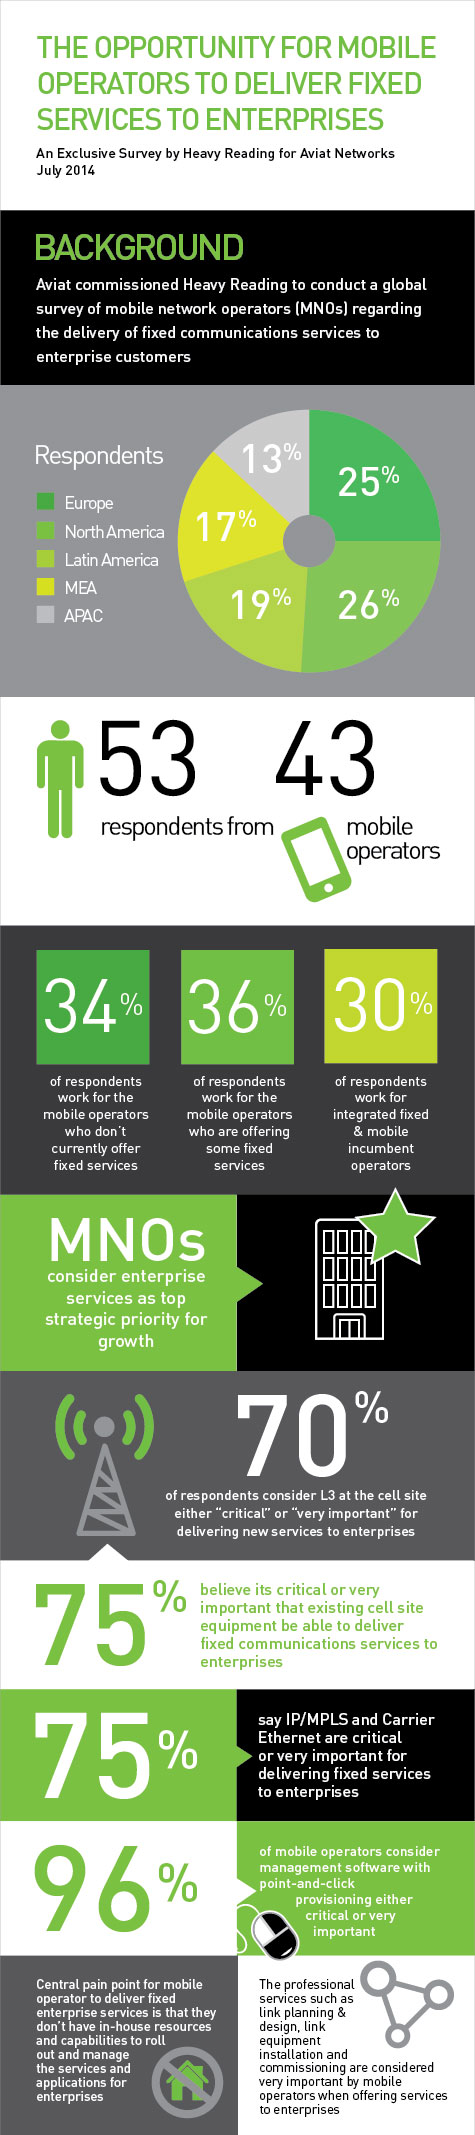 Infographic of Heavy Reading Aviat Networks survey results of Mobile Networks Operators indicates they will offer fixed wireless enterprise services for revenue growth.